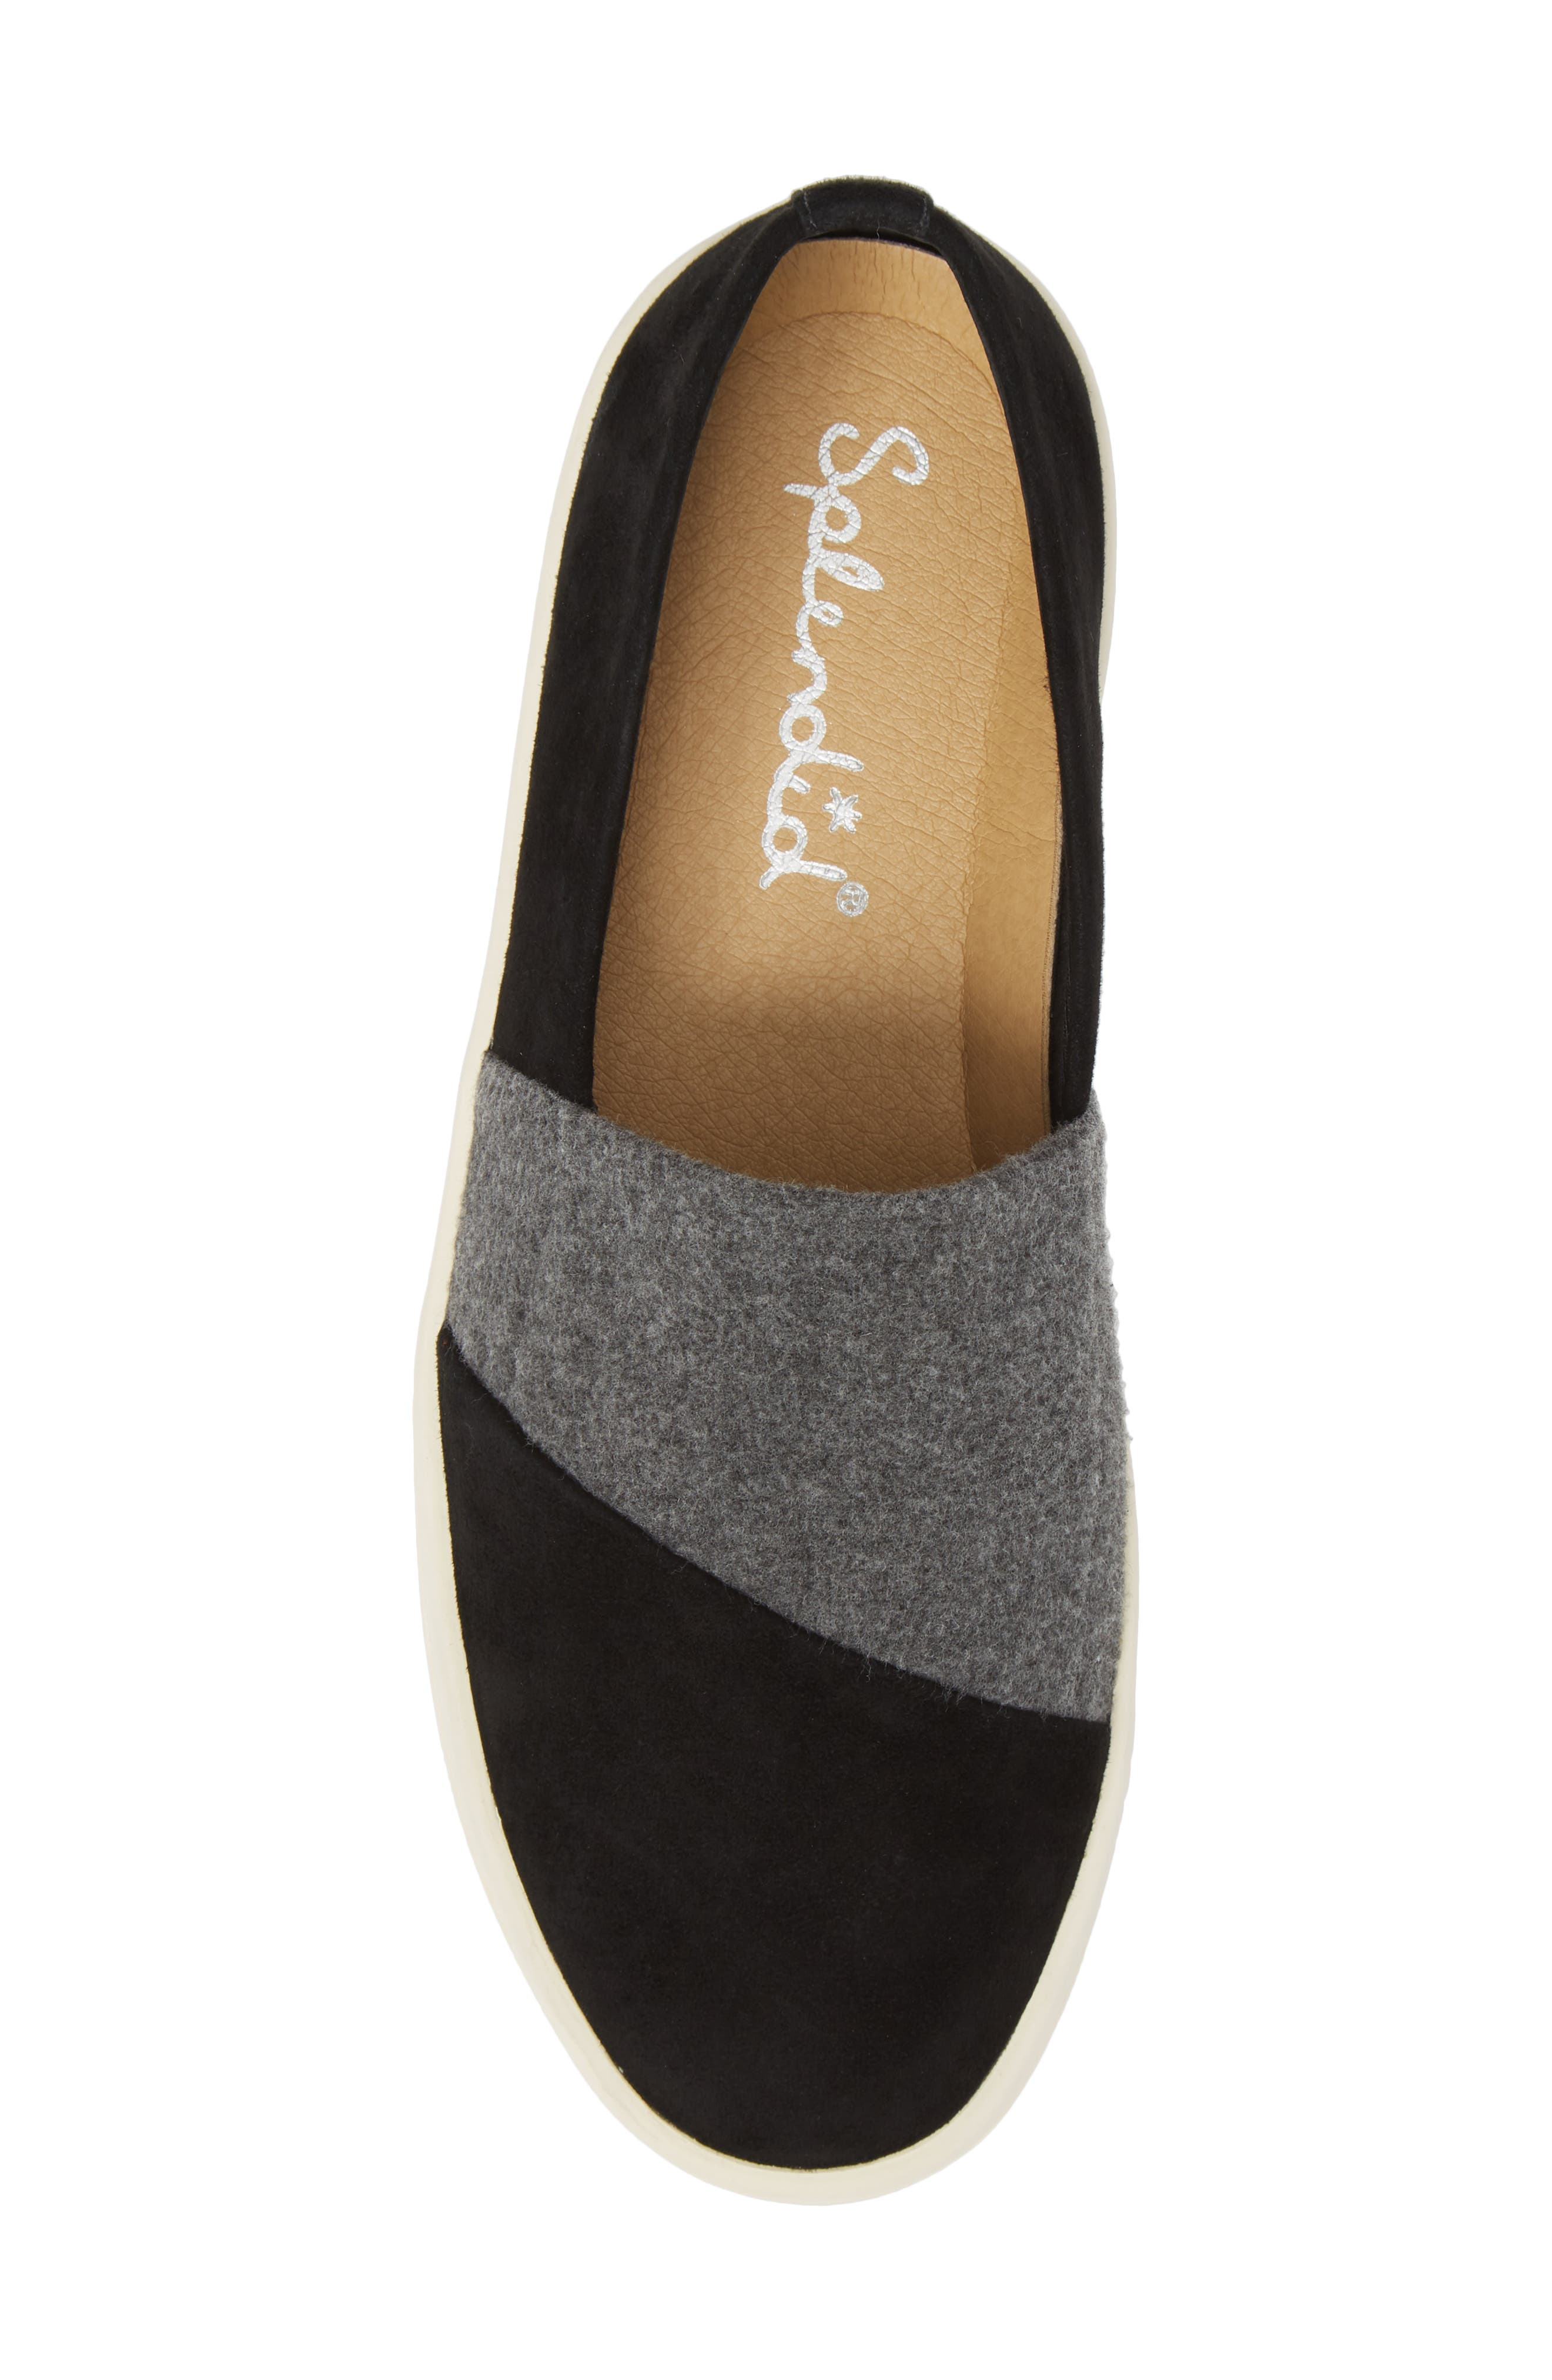 Nouvel Slip-On Sneaker,                             Alternate thumbnail 5, color,                             Black/ Grey Suede